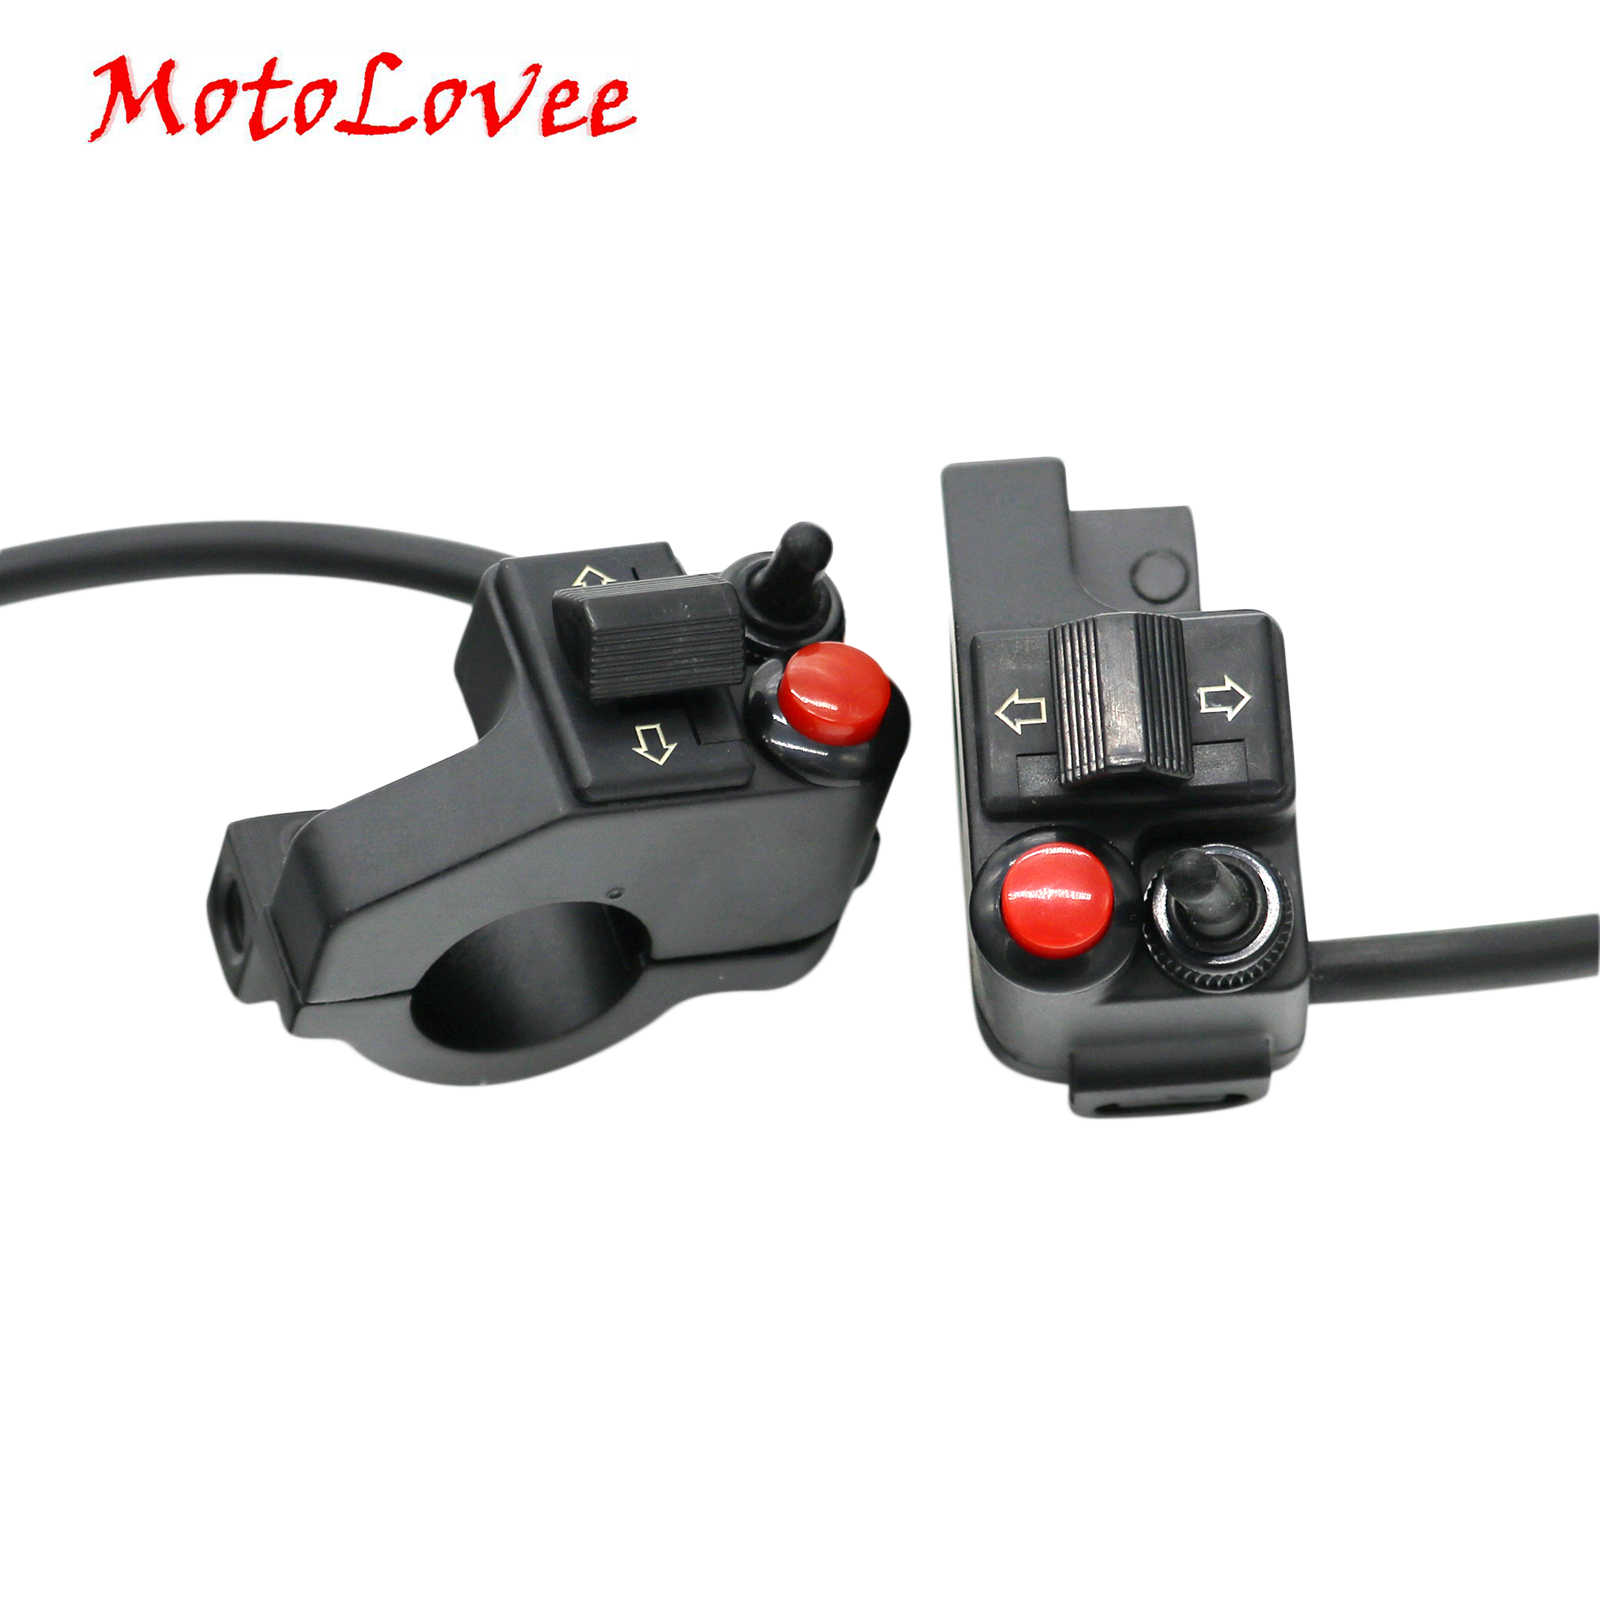 Motolovee Motor Modifikasi Stang Multi-Fungsi Saklar Lampu Steering Switch Horn Double Flash